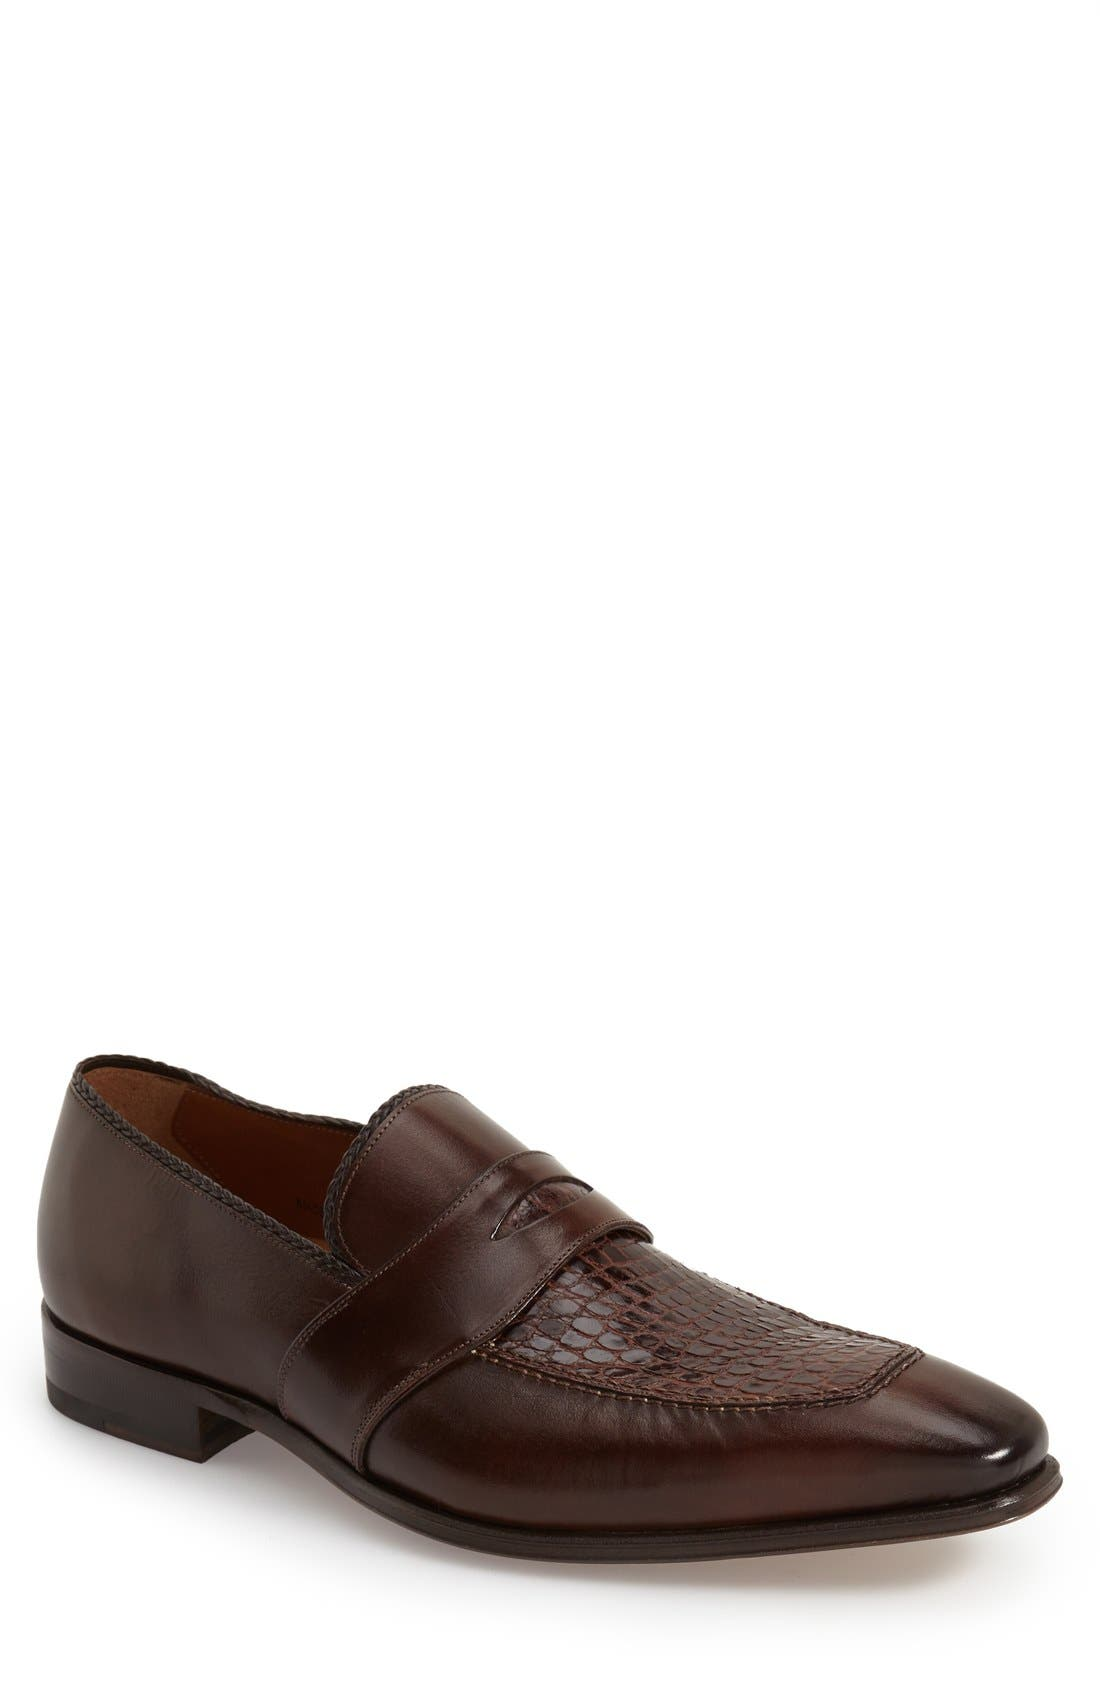 'Lambert' Penny Loafer,                             Main thumbnail 1, color,                             Brown Crocodile Leather